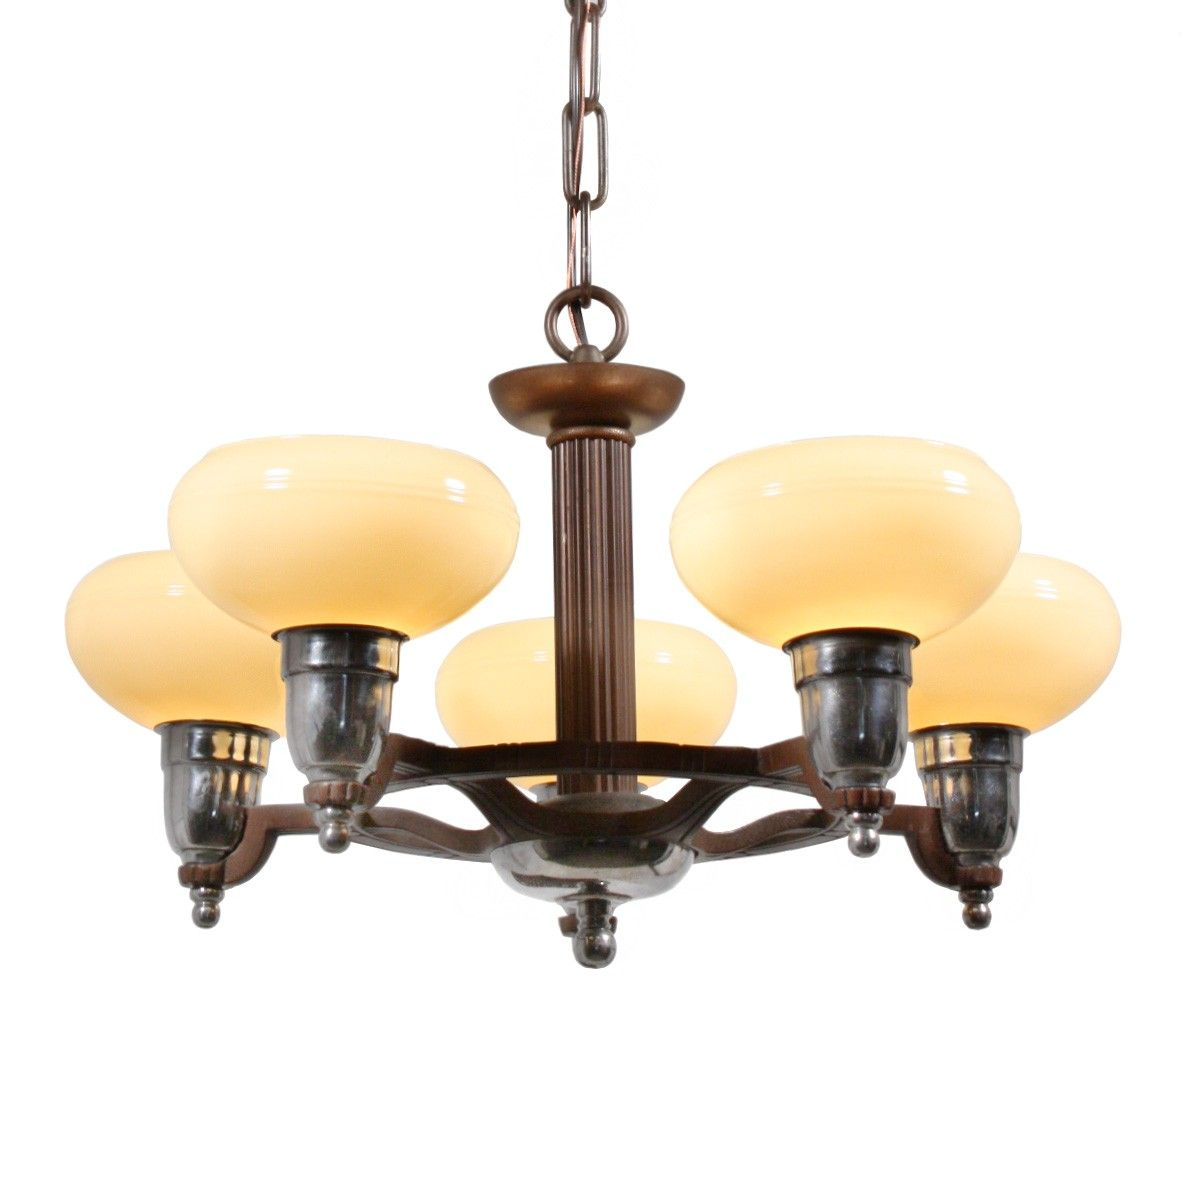 Fantastic antique art deco chandelier with original sit in shades fantastic antique art deco chandelier with original sit in shades arubaitofo Image collections